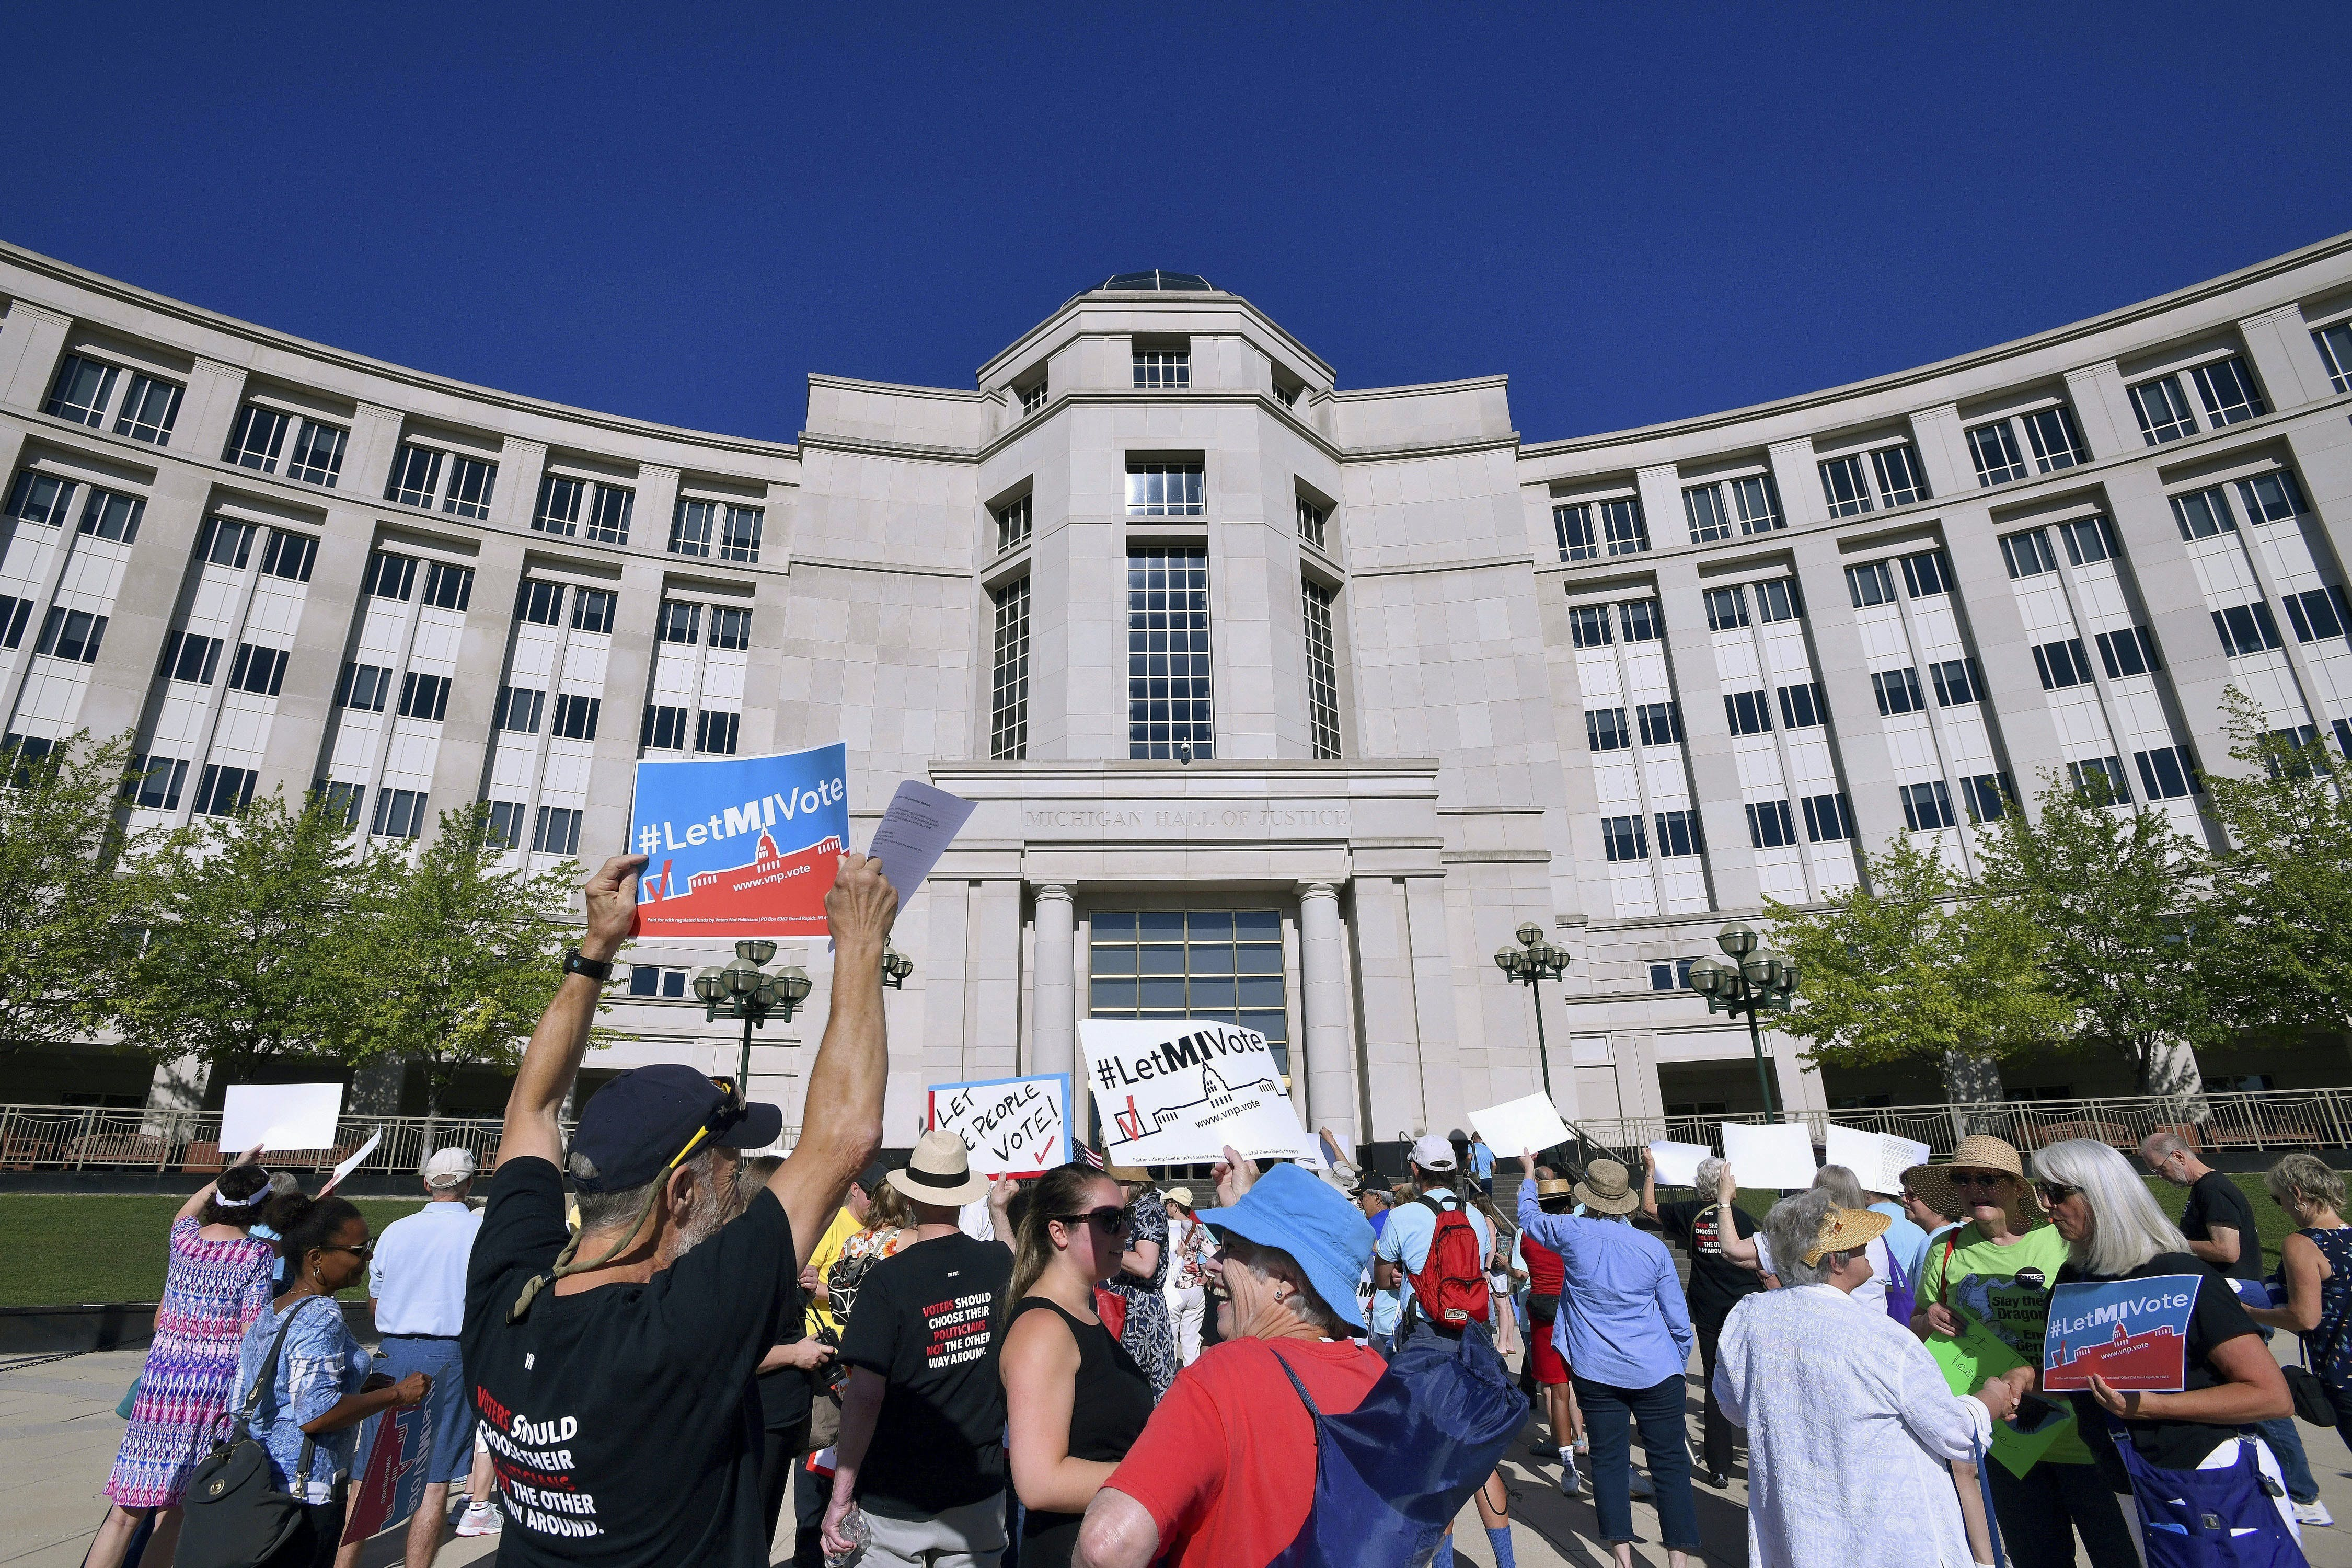 "FILE- In this July 18, 2018, file photo, demonstrators rally outside the Michigan Hall of Justice in Lansing, Mich., where the state's Supreme Court heard arguments about whether voters in November should be able to pass a constitutional amendment that would change how the state's voting maps are drawn. A growing movement to curb partisan gerrymandering is being put to the test in the Nov. 6 elections with several state ballot measures intended to make congressional and state legislative districts more ""fair."" (Dale G. Young/The Detroit News via AP, File)"